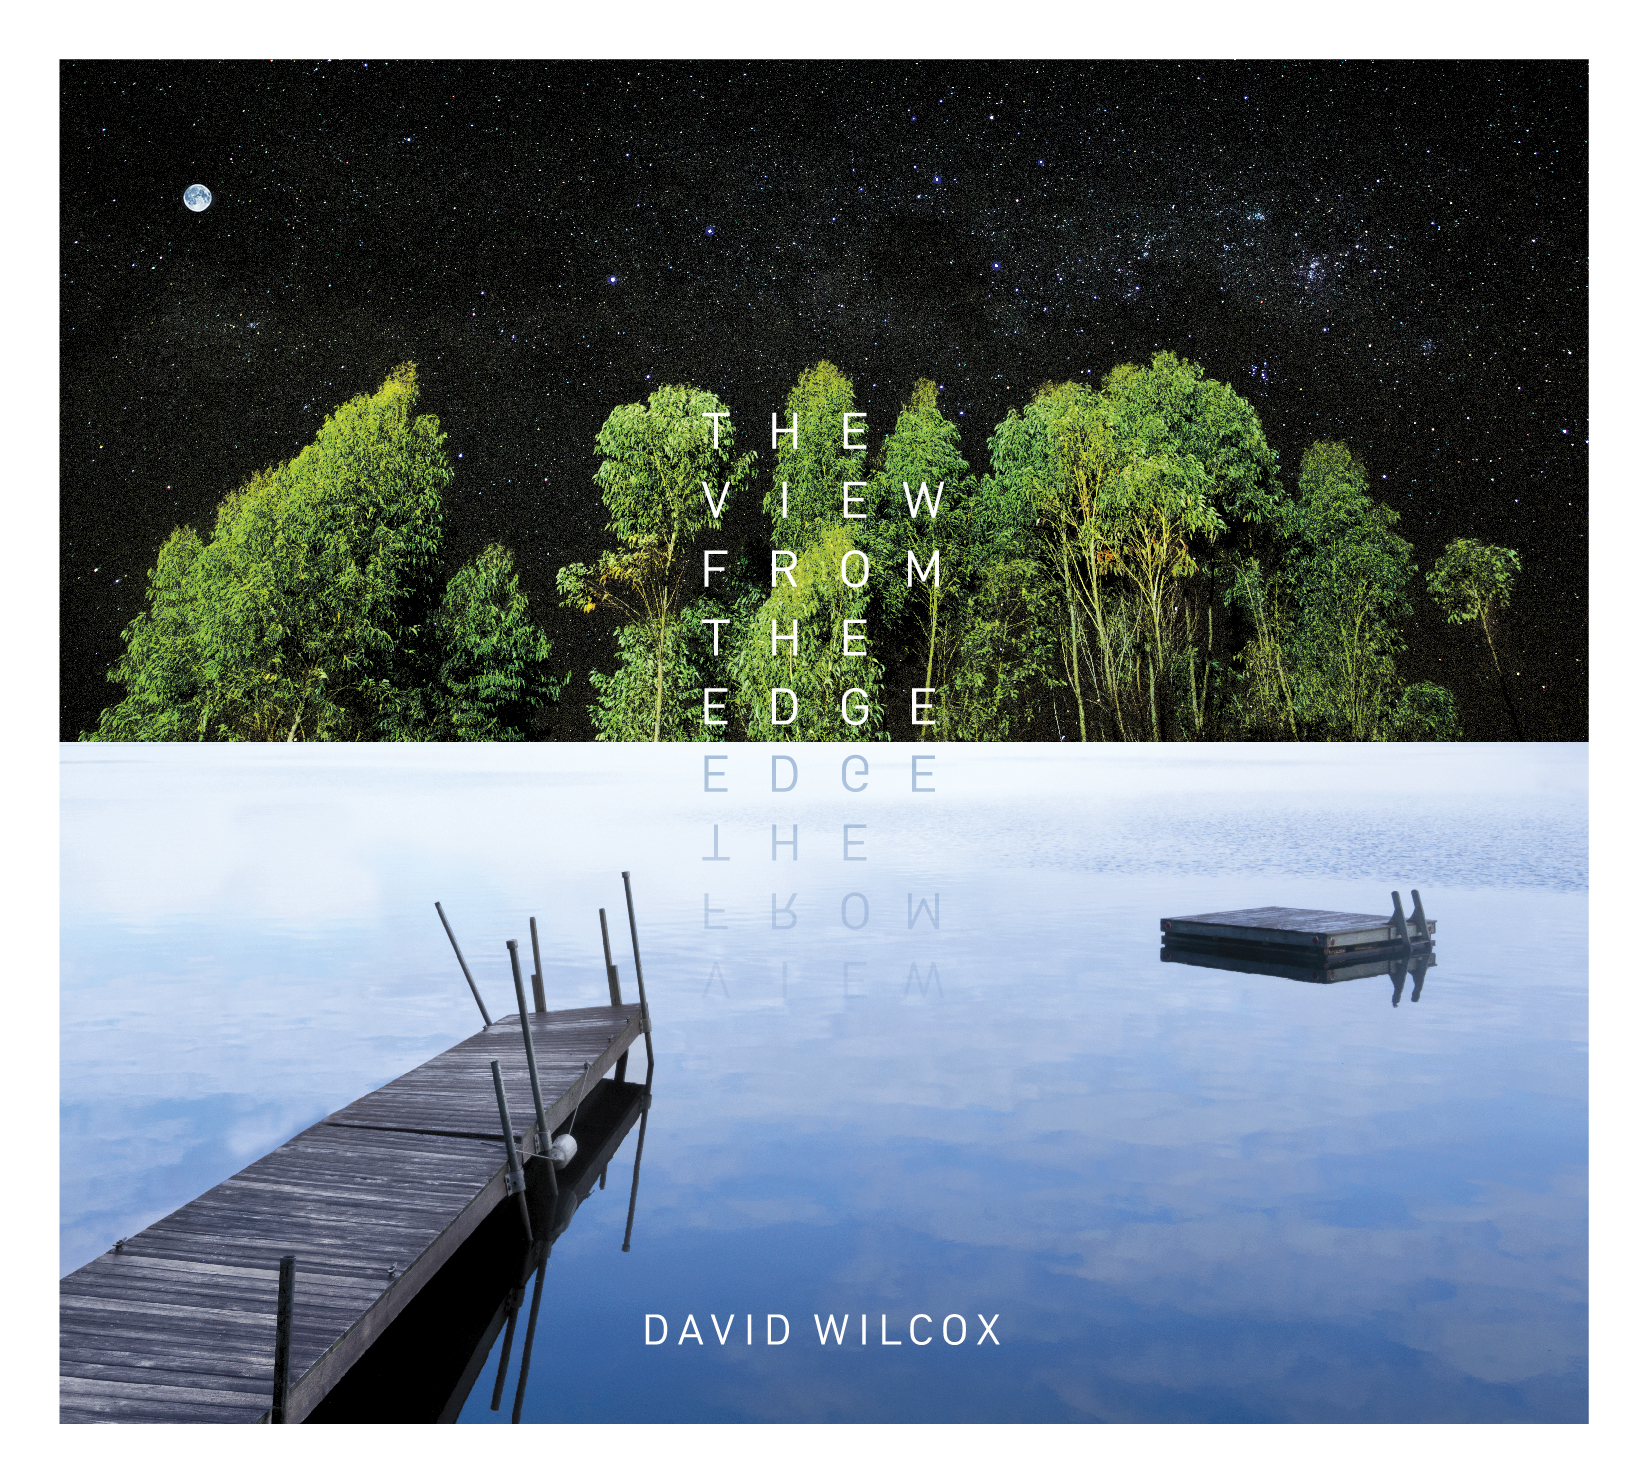 DavidWilcox_2018_Cover Art-01.jpg